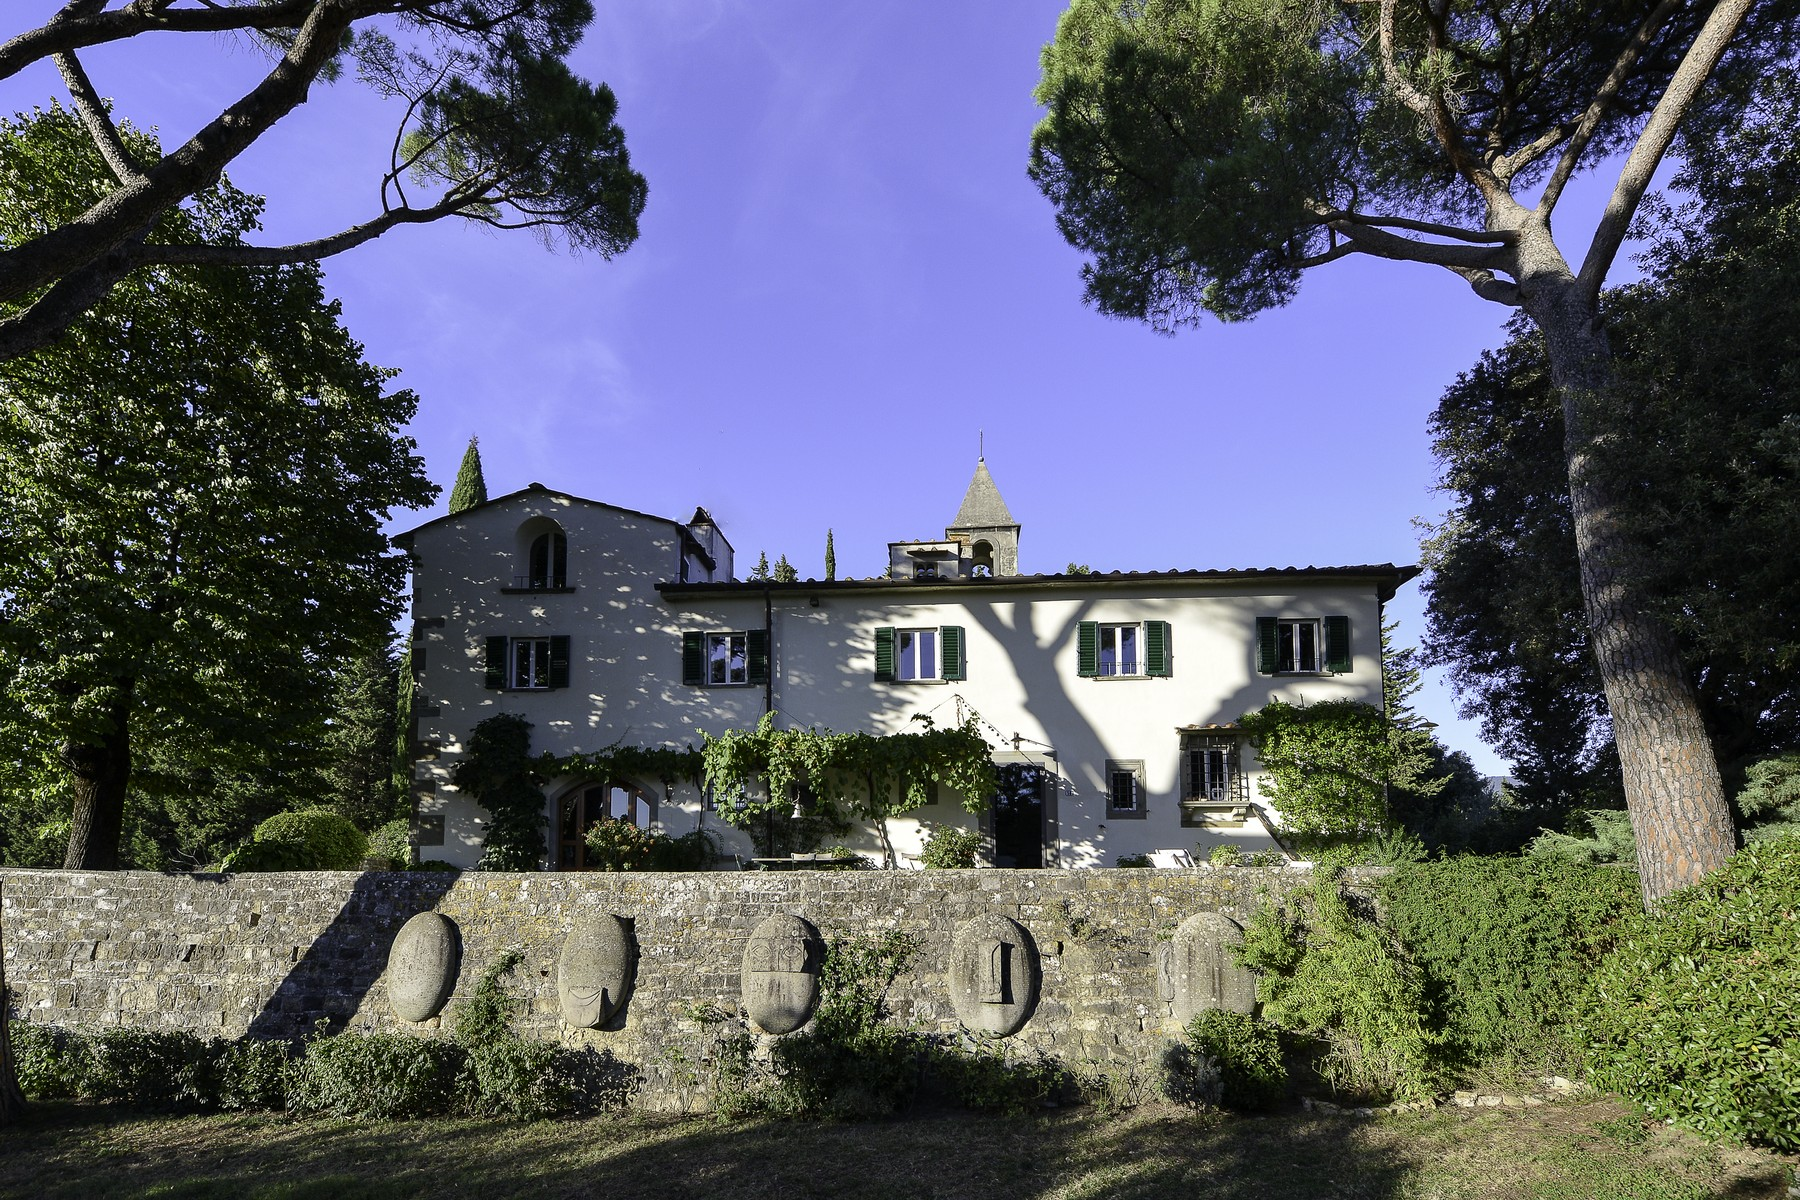 Single Family Home for Sale at Marvelous renaissance villa on the Florentine's hills Via Sant'Andrea a Sveglia Fiesole, 50014 Italy